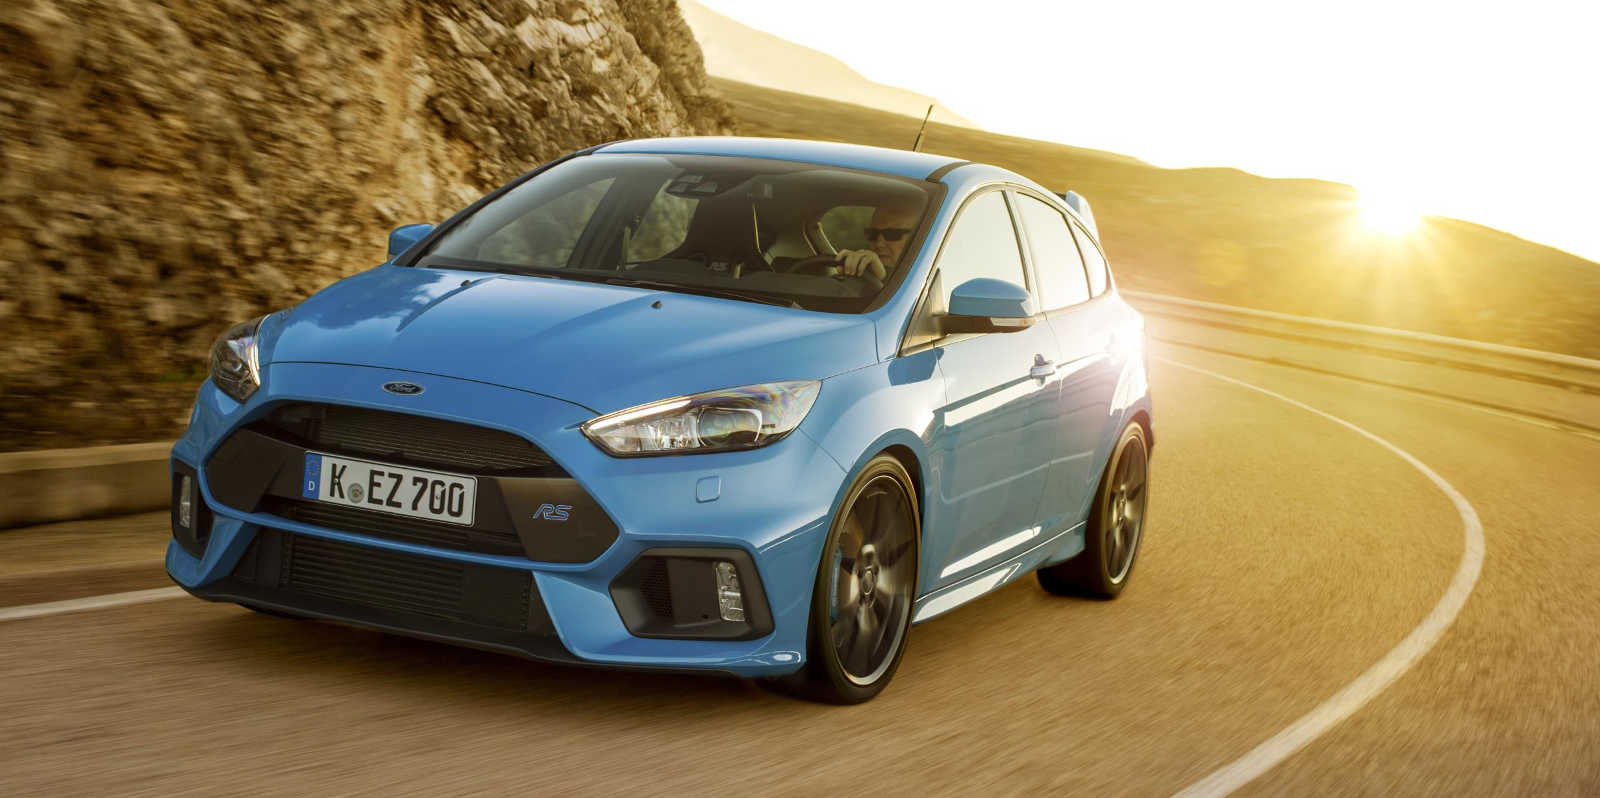 El Ford Focus RS, designat cotxe de l'any als Vehicle Dynamics Awards